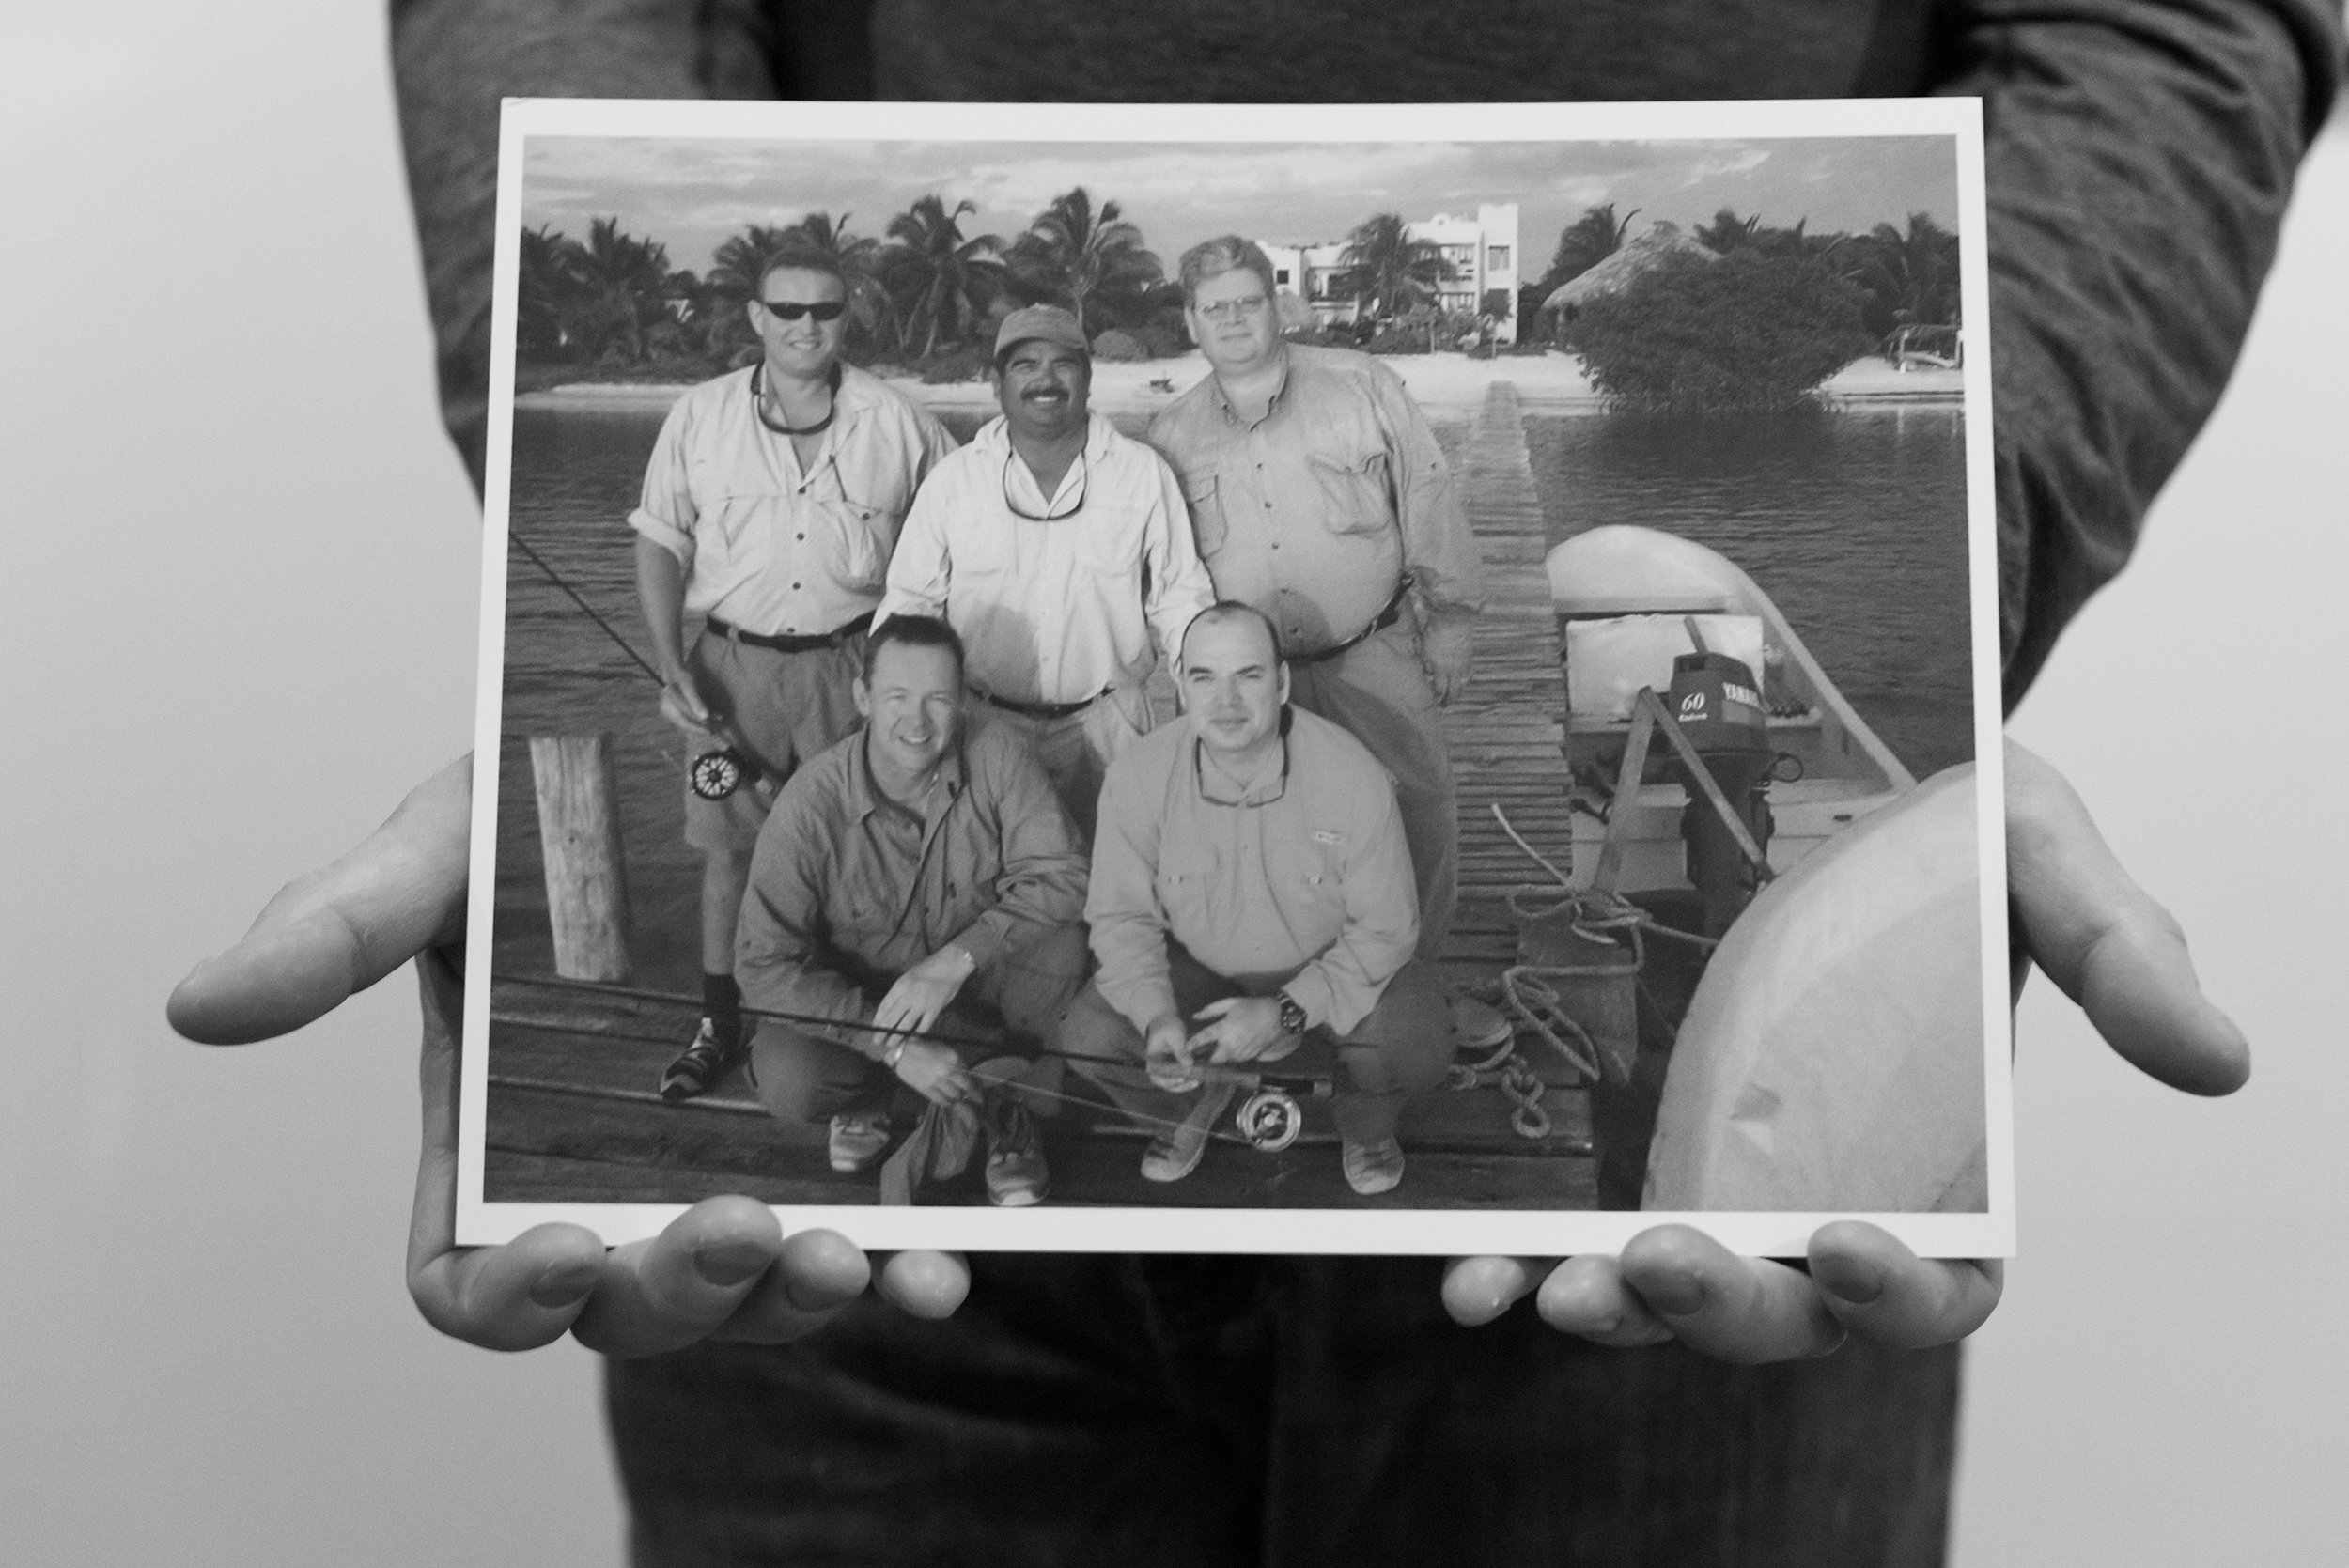 Ron and Friends in xcalak, mexico. - Photographer unknown.